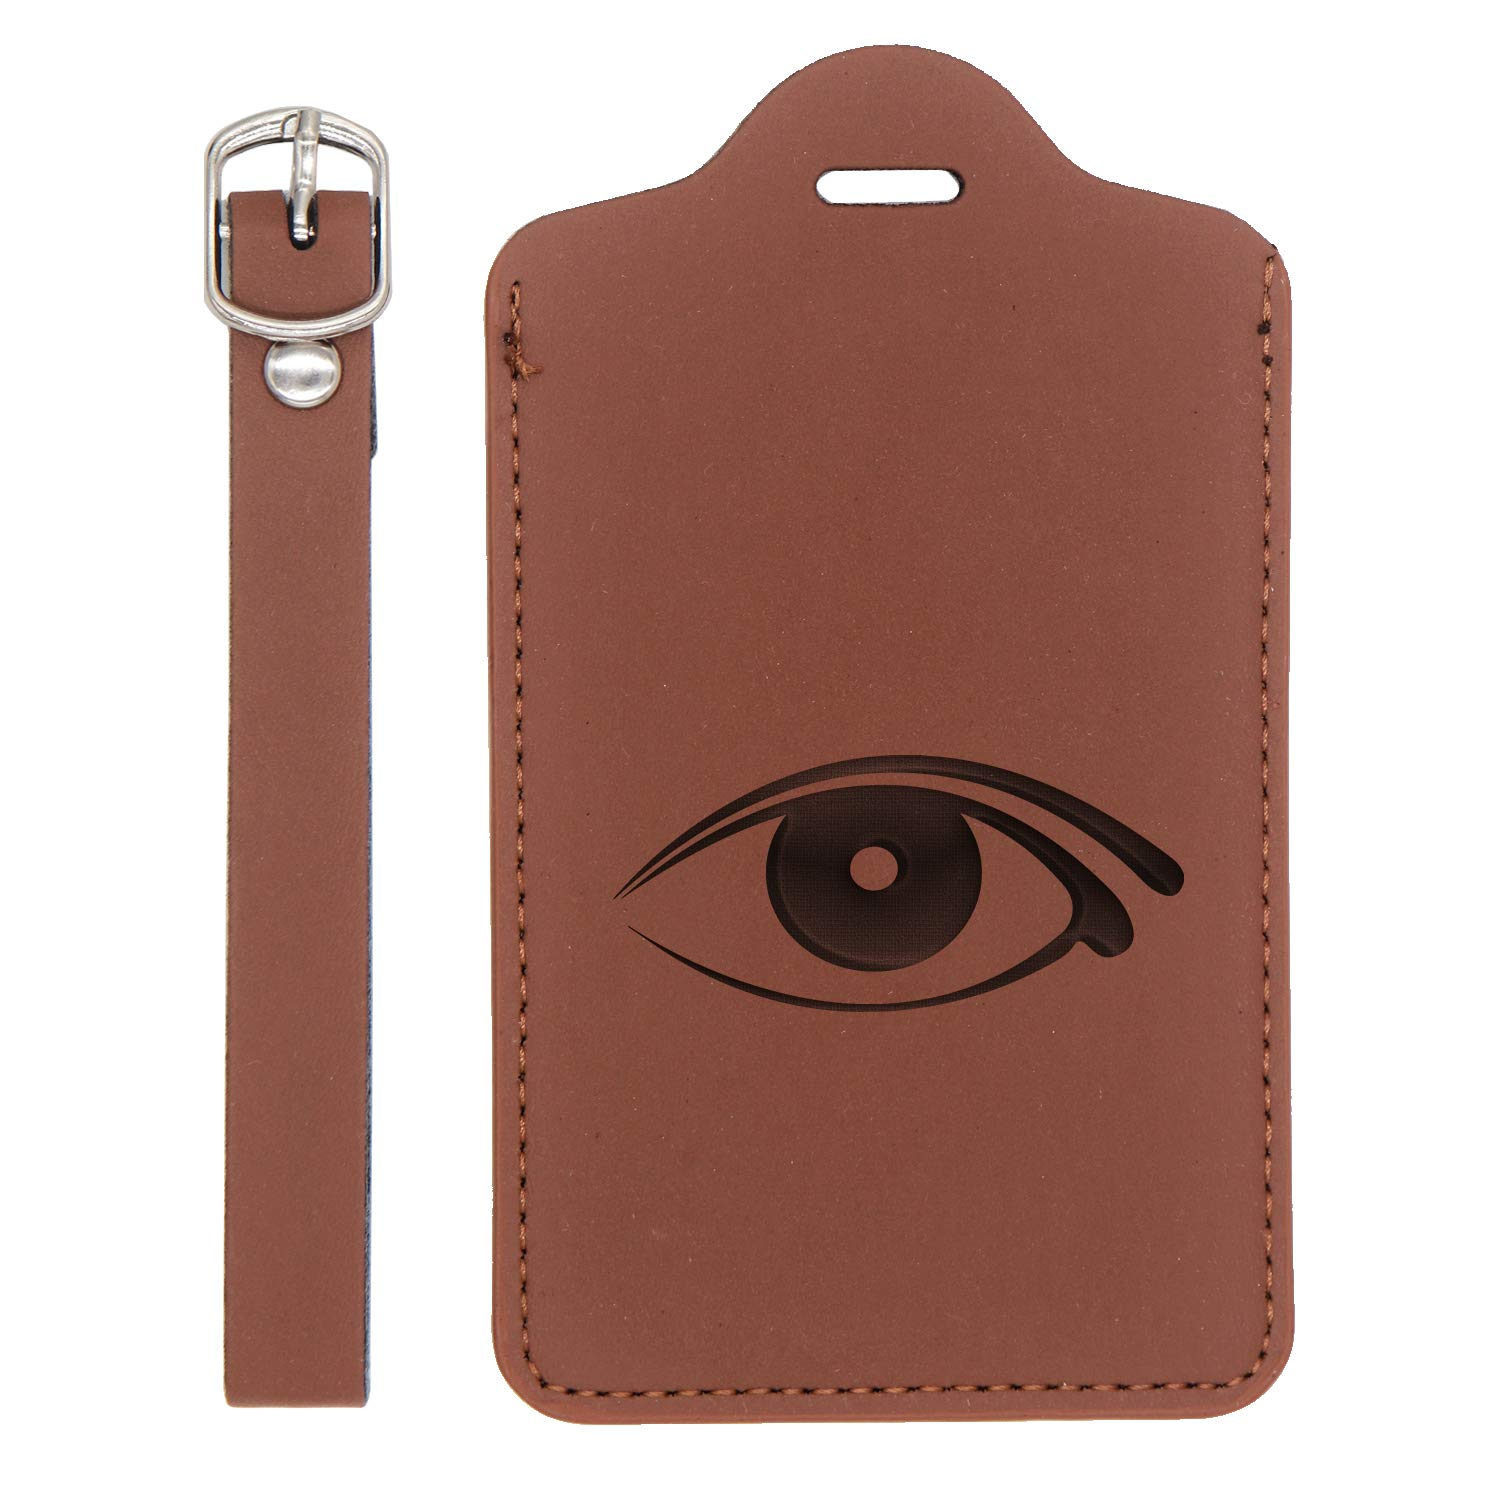 - United States Standard London Tan - Set Of 2 Eyes Silhouettes 2 Engraved Synthetic Pu Leather Luggage Tag Handcrafted By Mastercraftsmen For Any Type Of Luggage